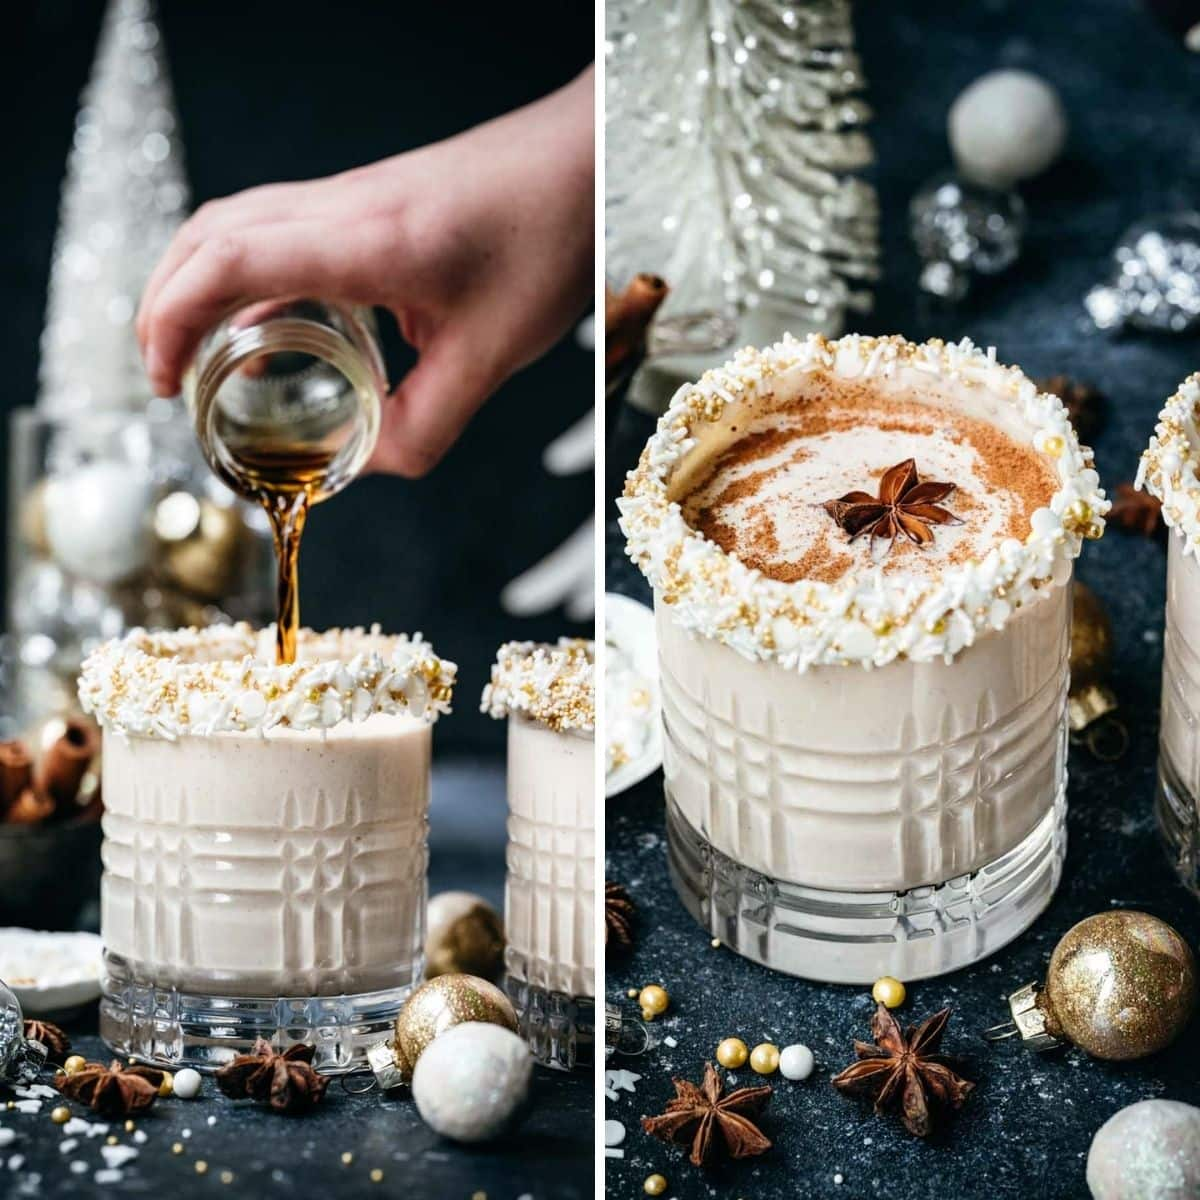 On the left: alcohol being added to eggnog. On the right: finished spiked eggnog.